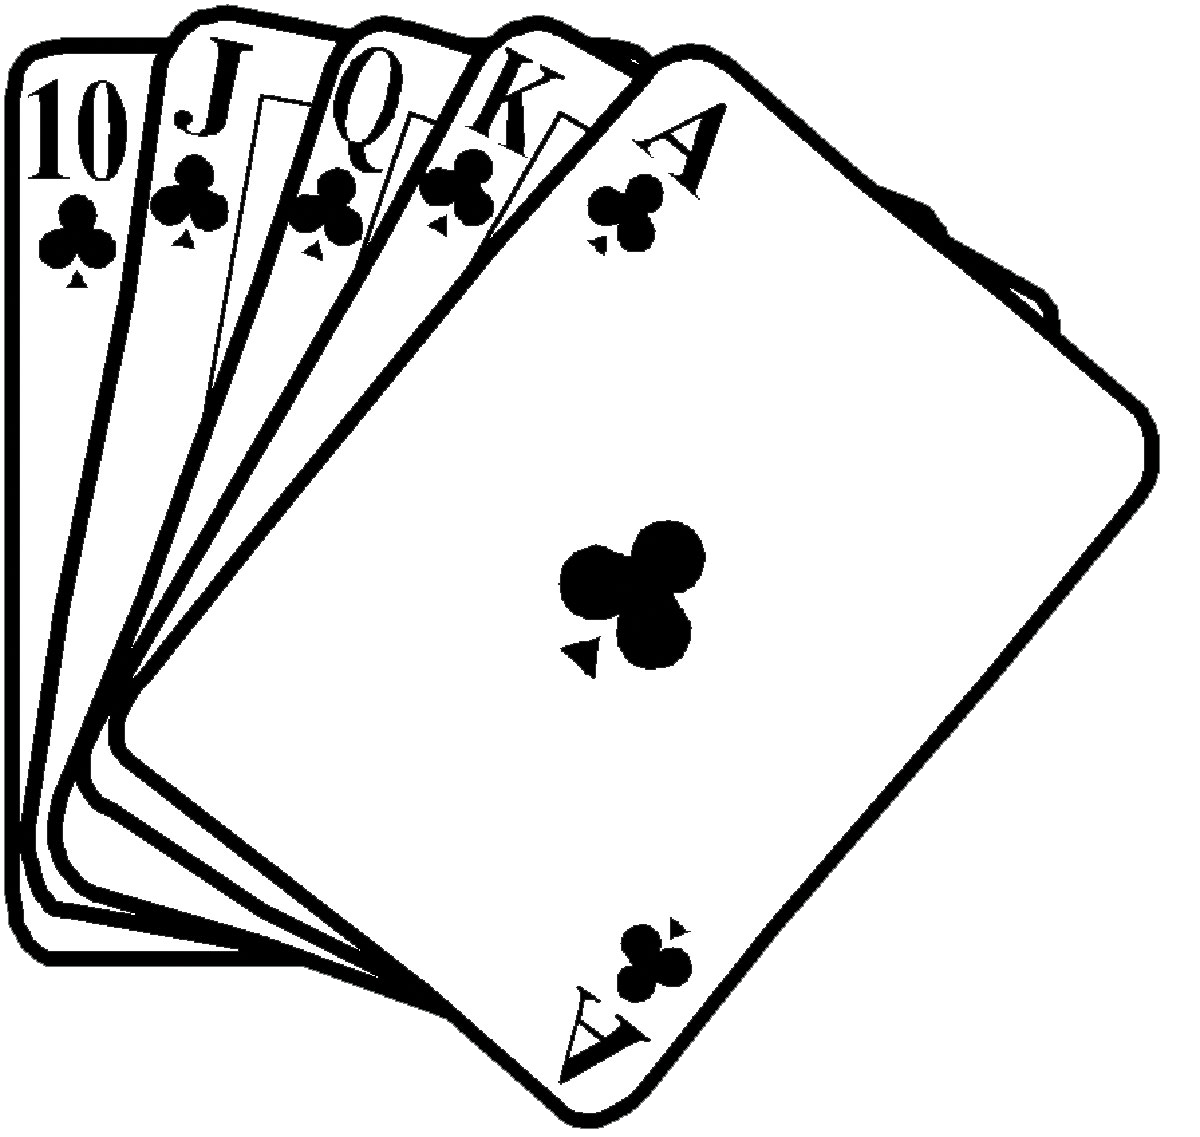 Free Pictures Of Poker Hands, Download Free Clip Art, Free.